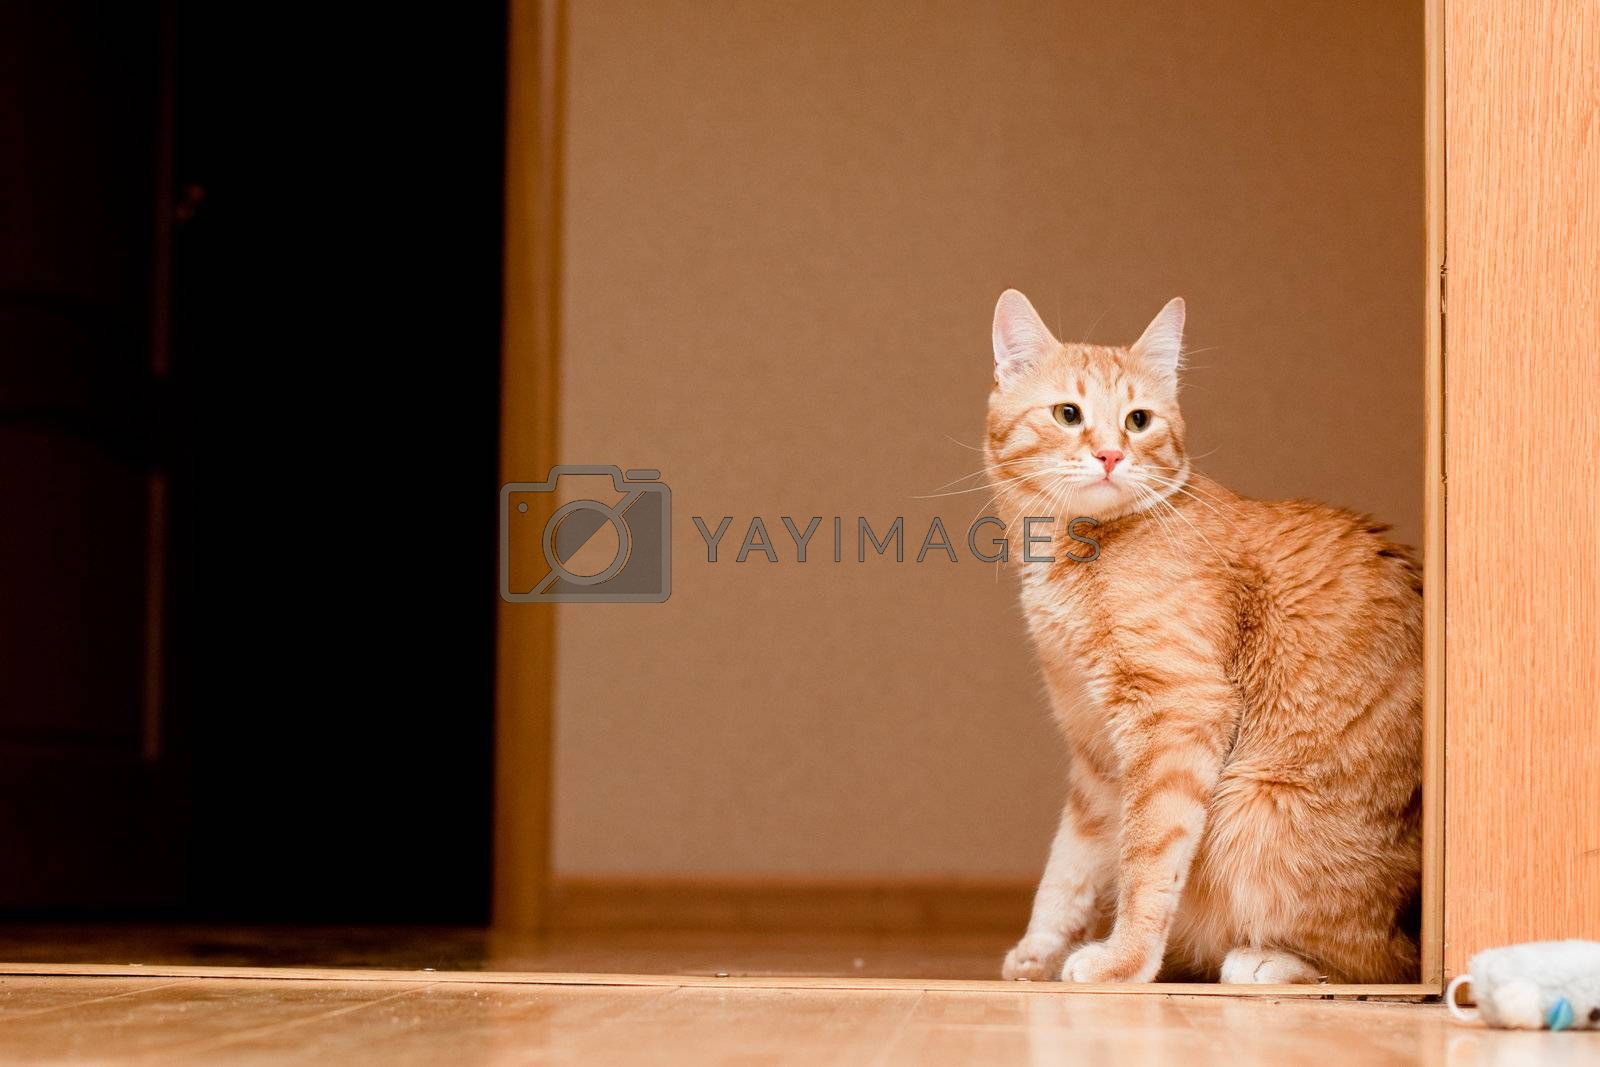 A young ginger tabby cat on the wooden floor